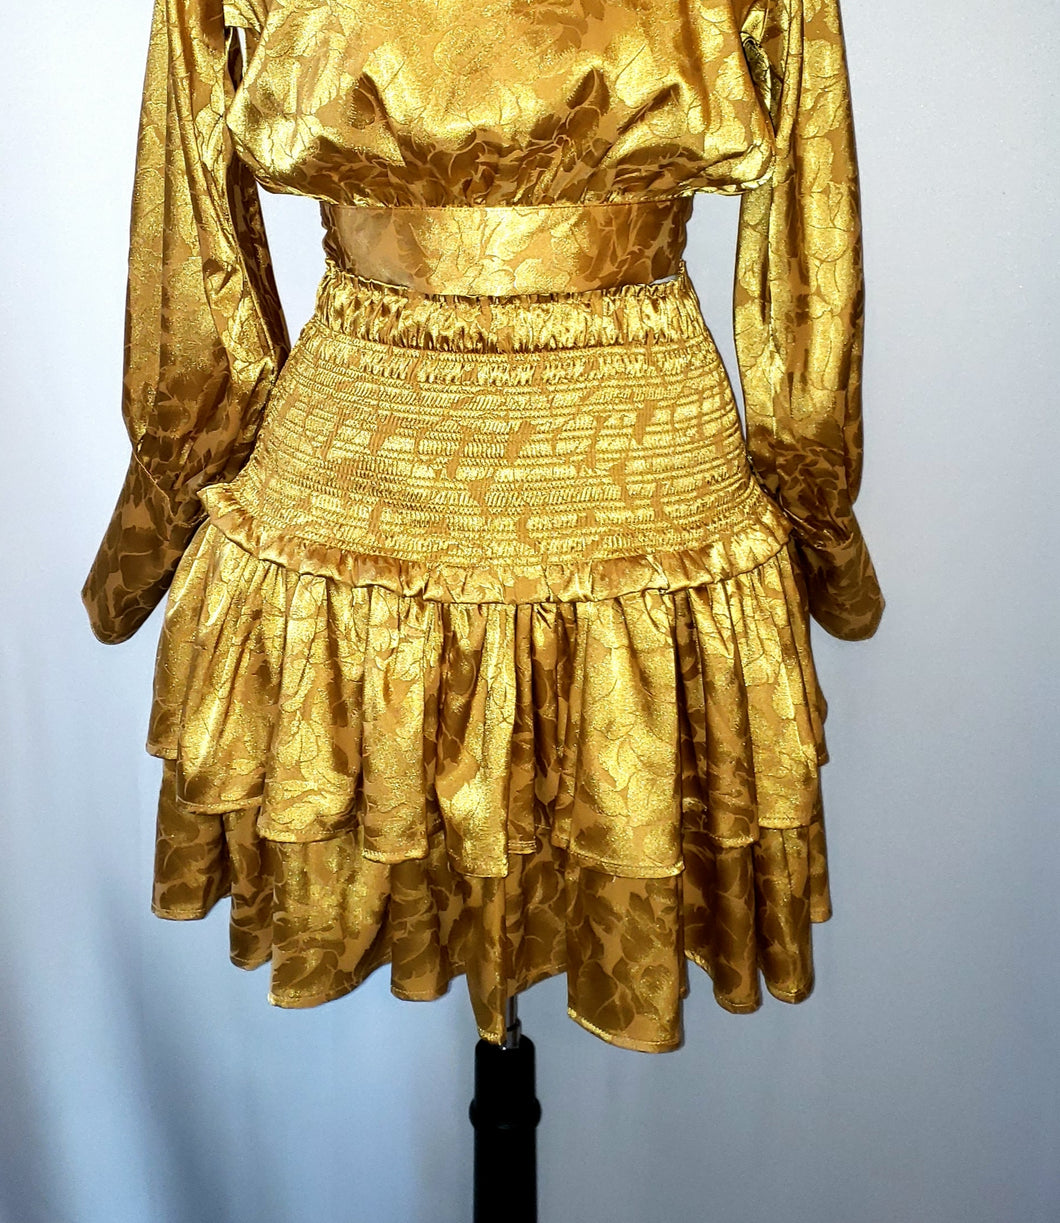 Gold ruffle skirt